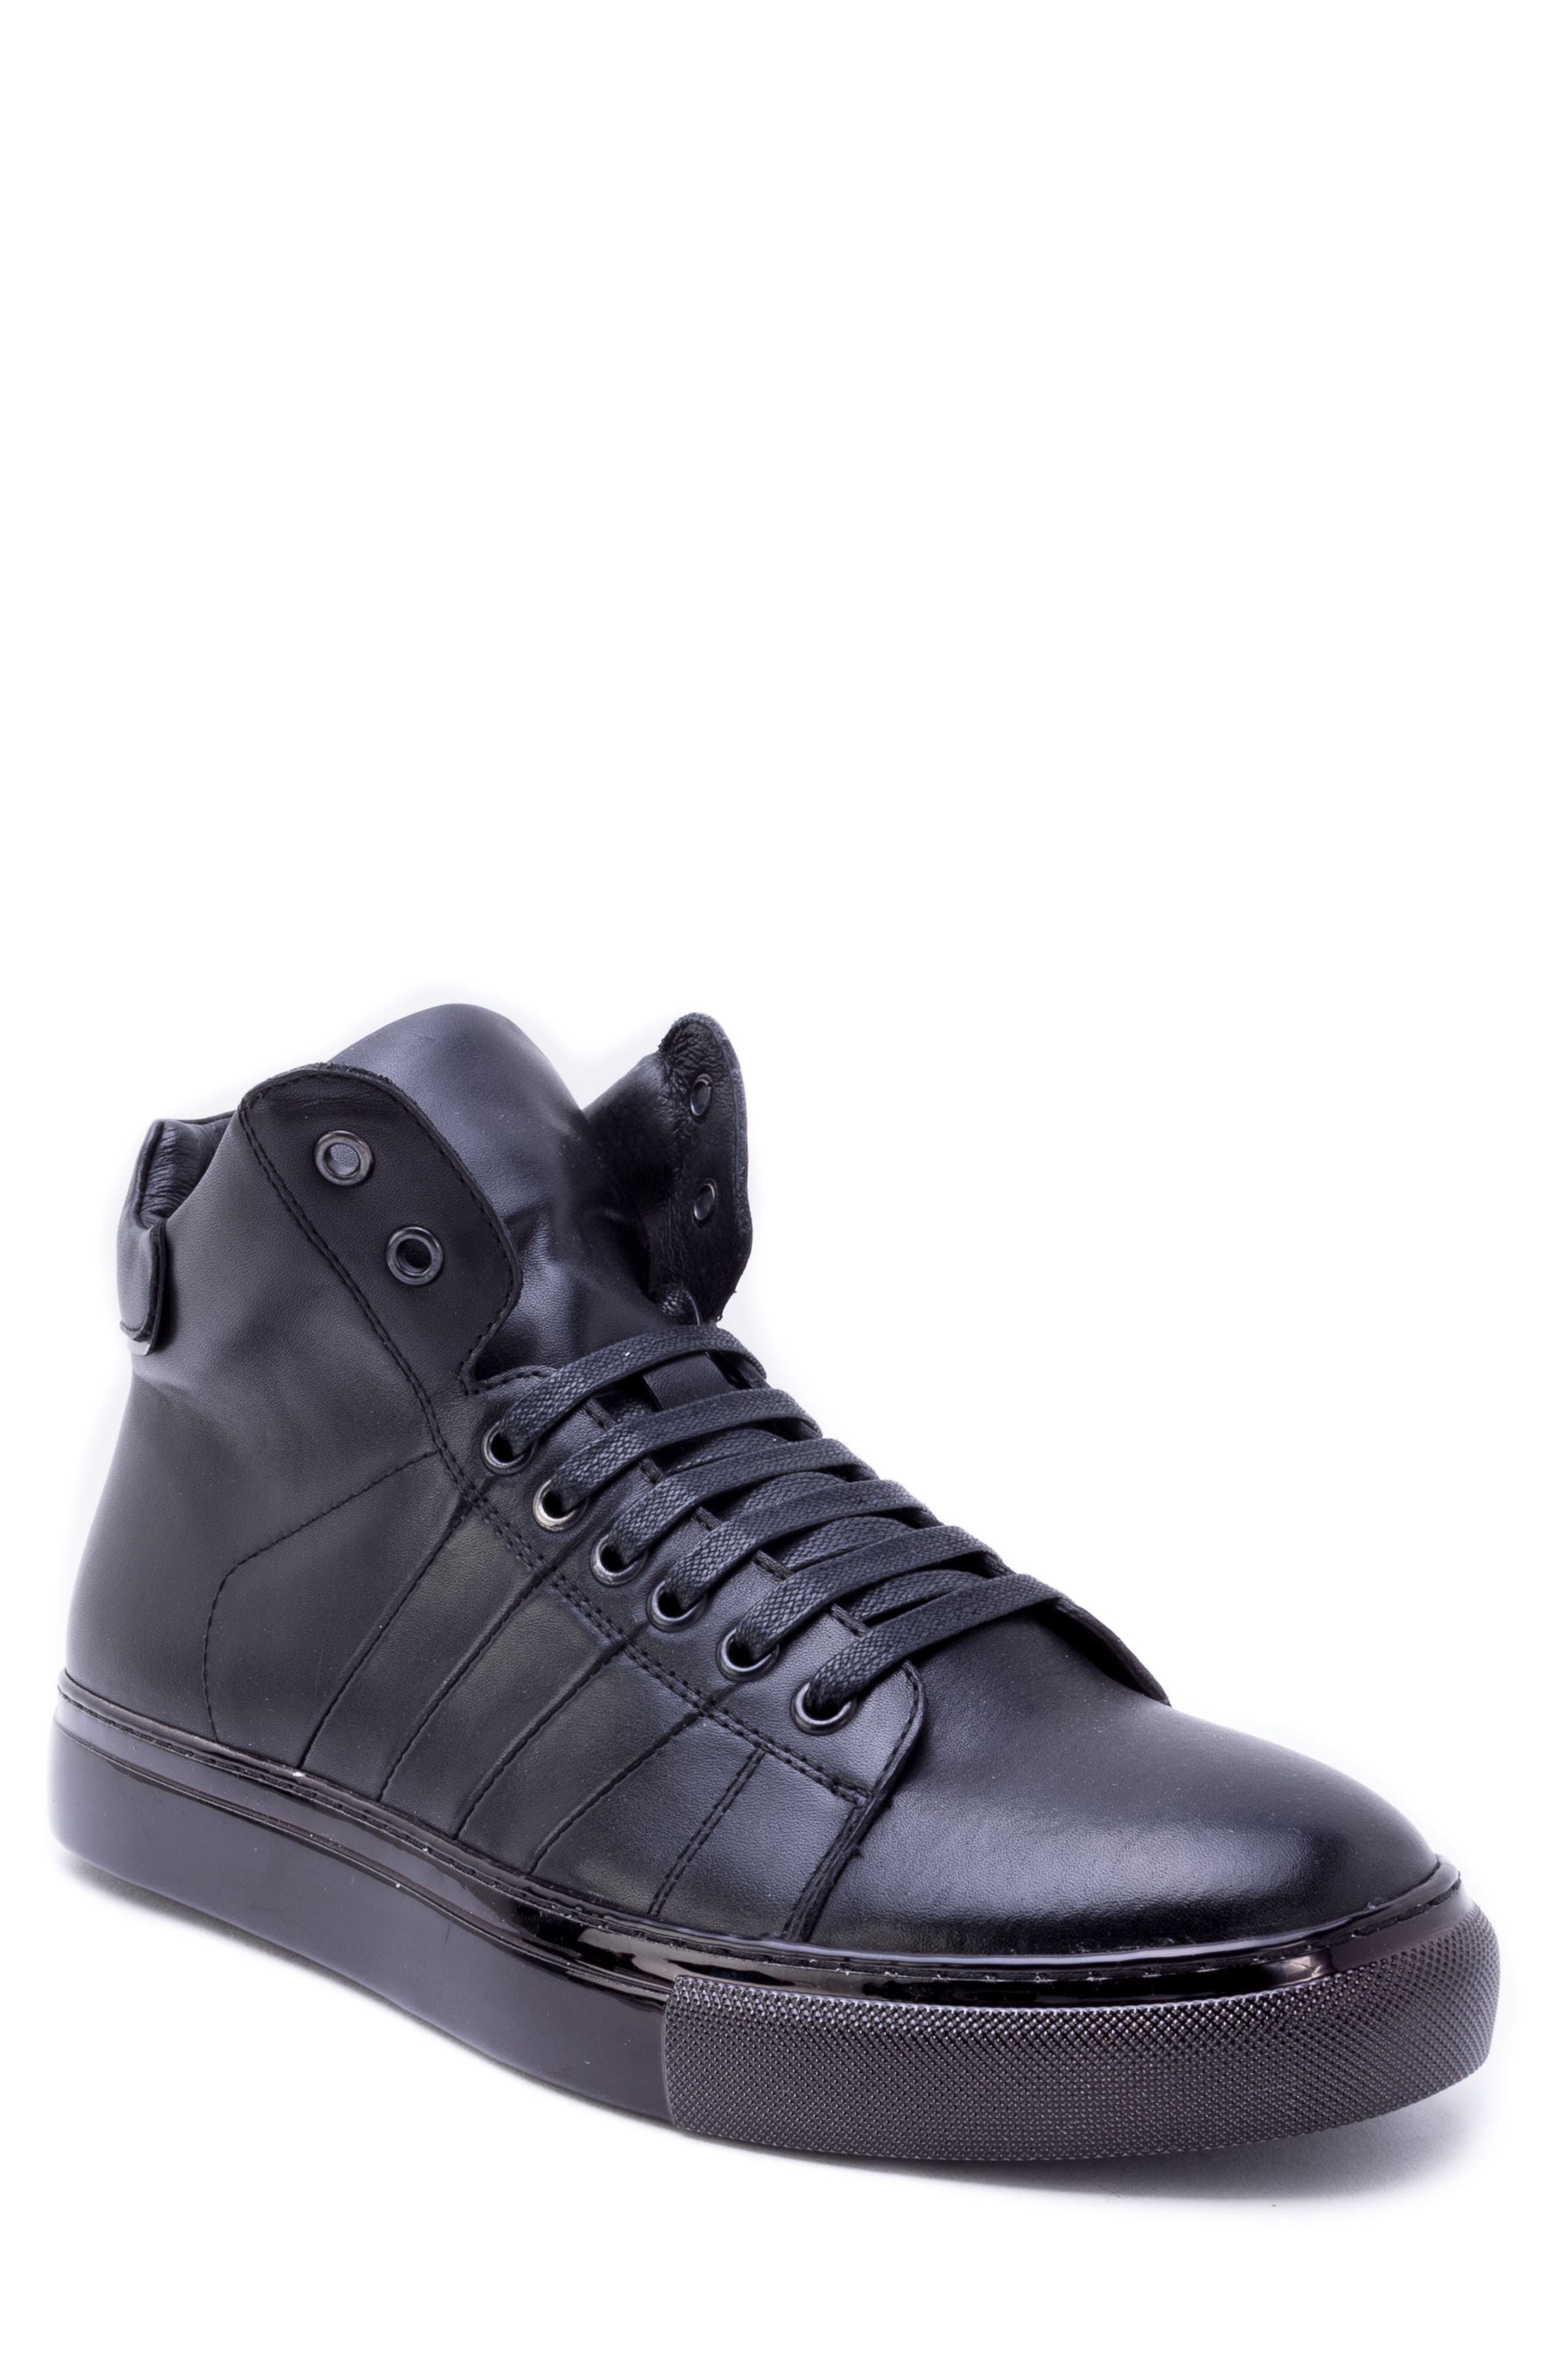 Crosby Sneaker,                         Main,                         color, BLACK LEATHER